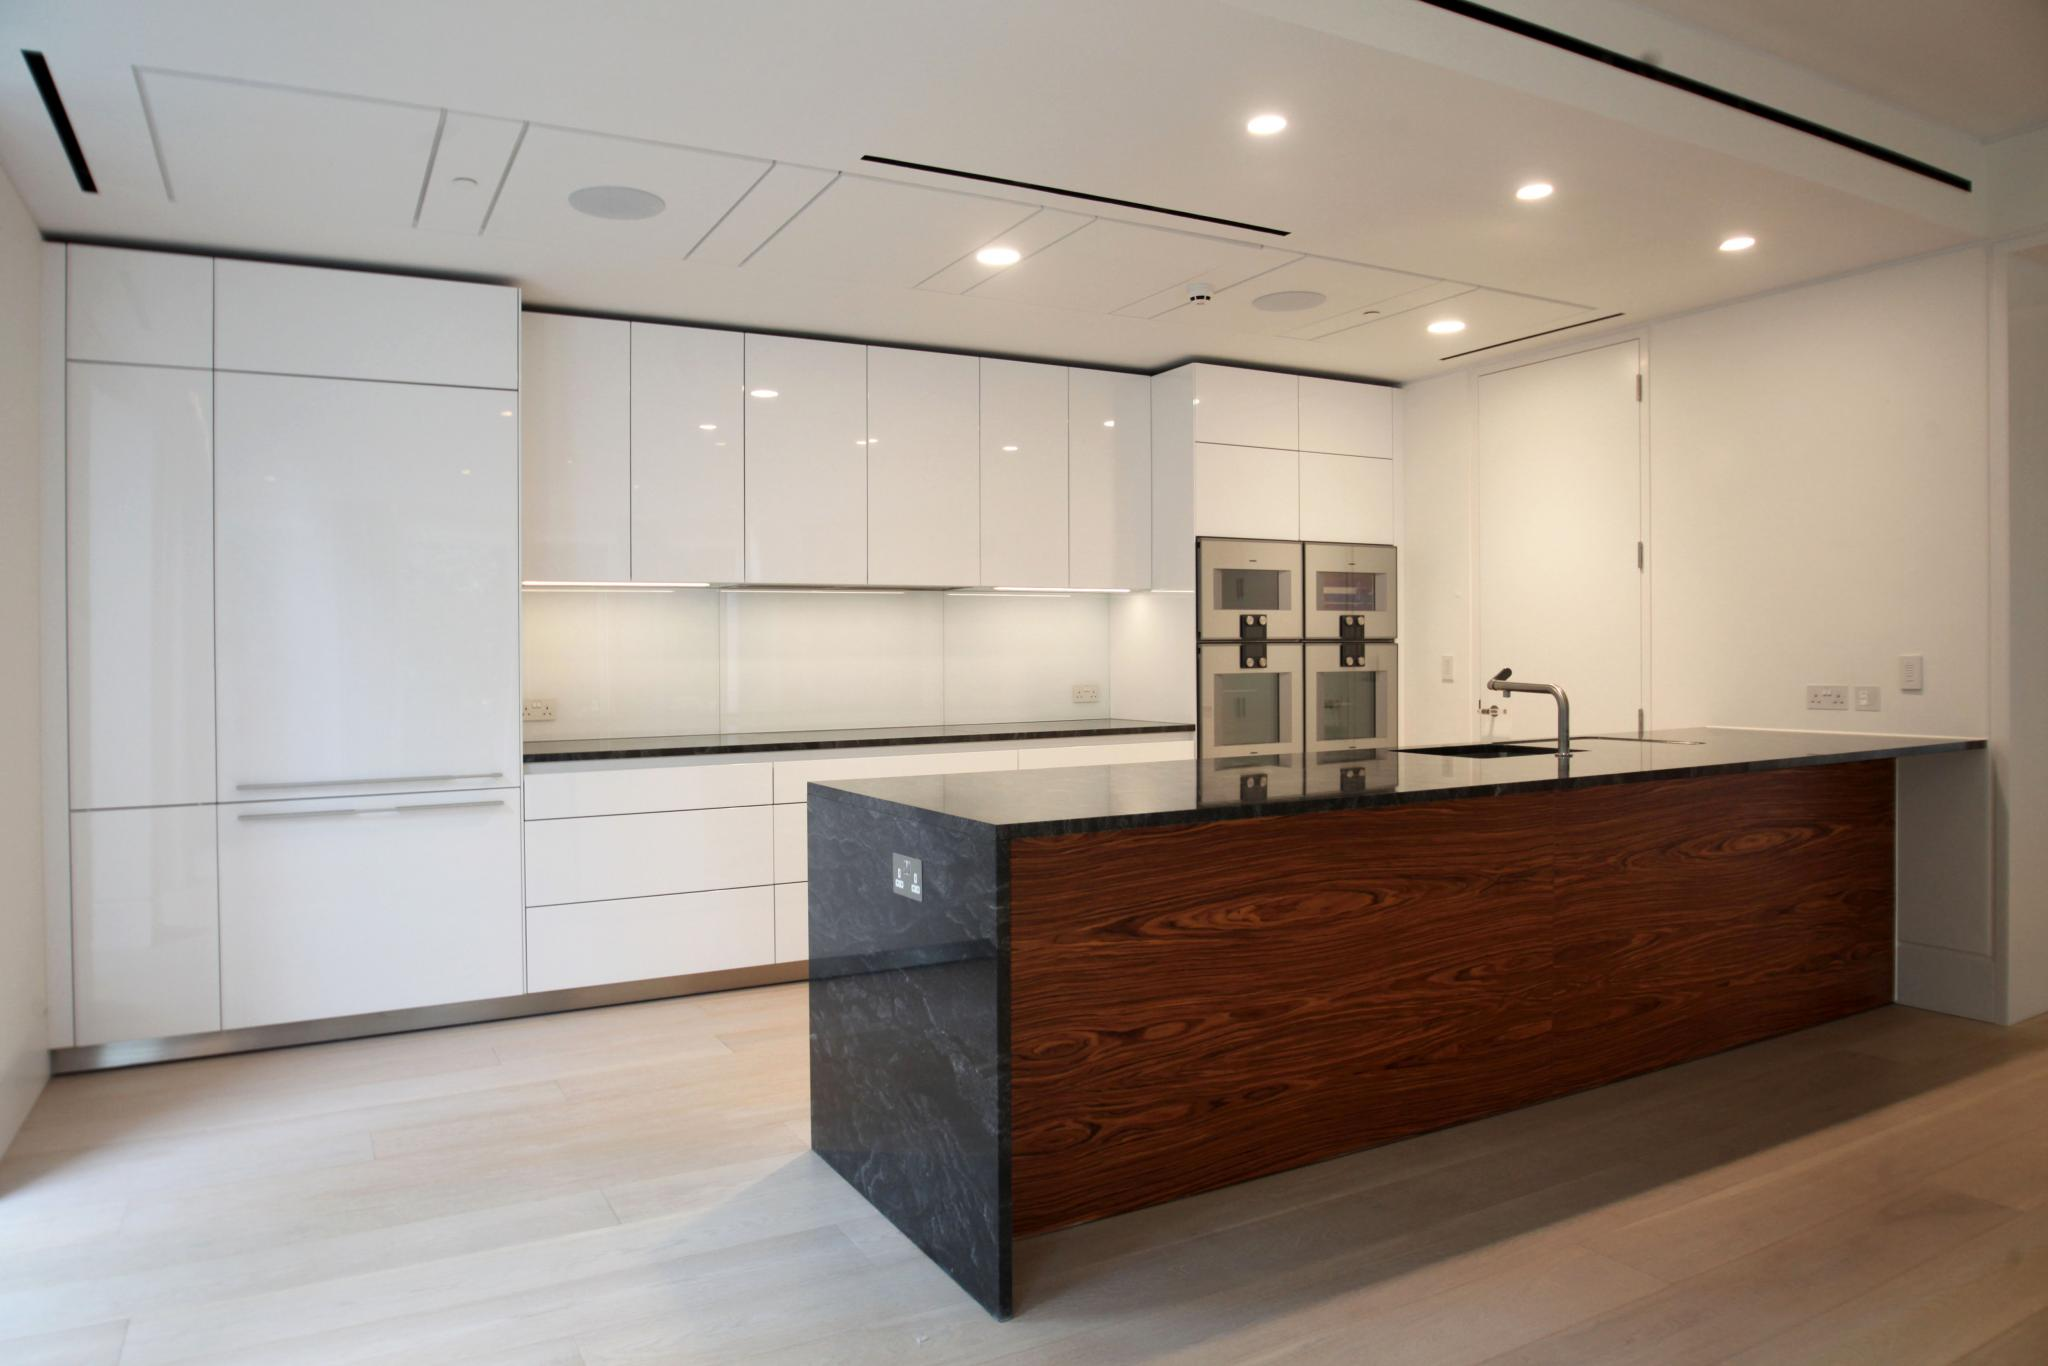 Bulthaup B3 Wow ? Opp £130,000+ Bulthaup B3 Pre-installed High Gloss Kitchen, Peninsula, Lots Of Gaggenau Appliances, London - Used Kitchen Exchange